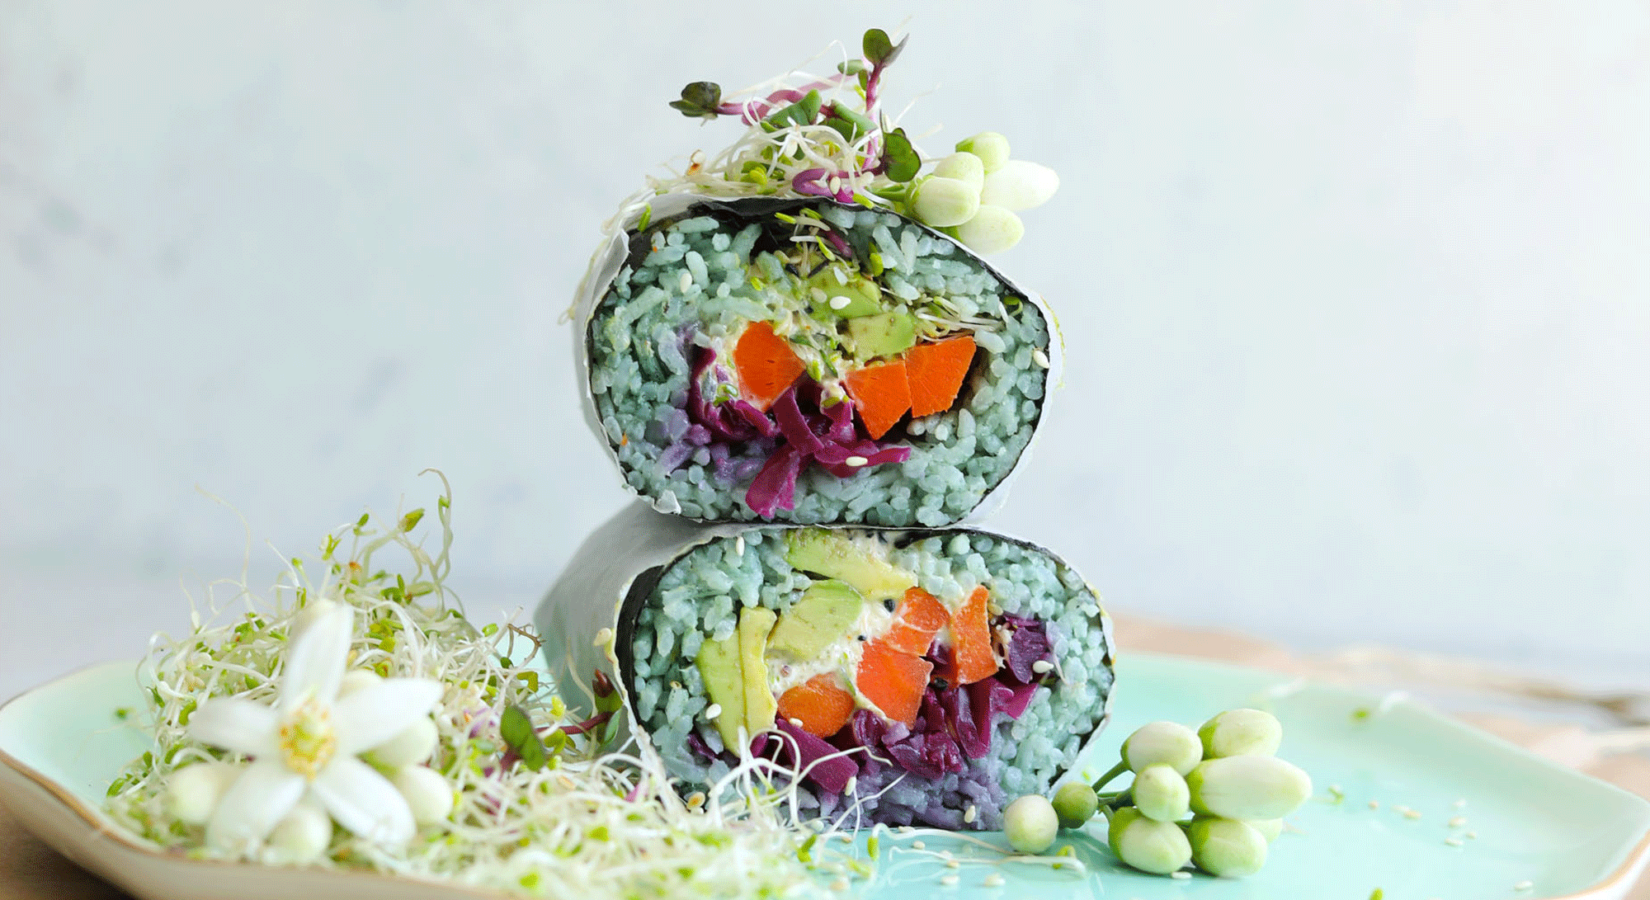 Sushi Burrito with Roasted Carrots, Avocado, Sprouts & Chili Aioli